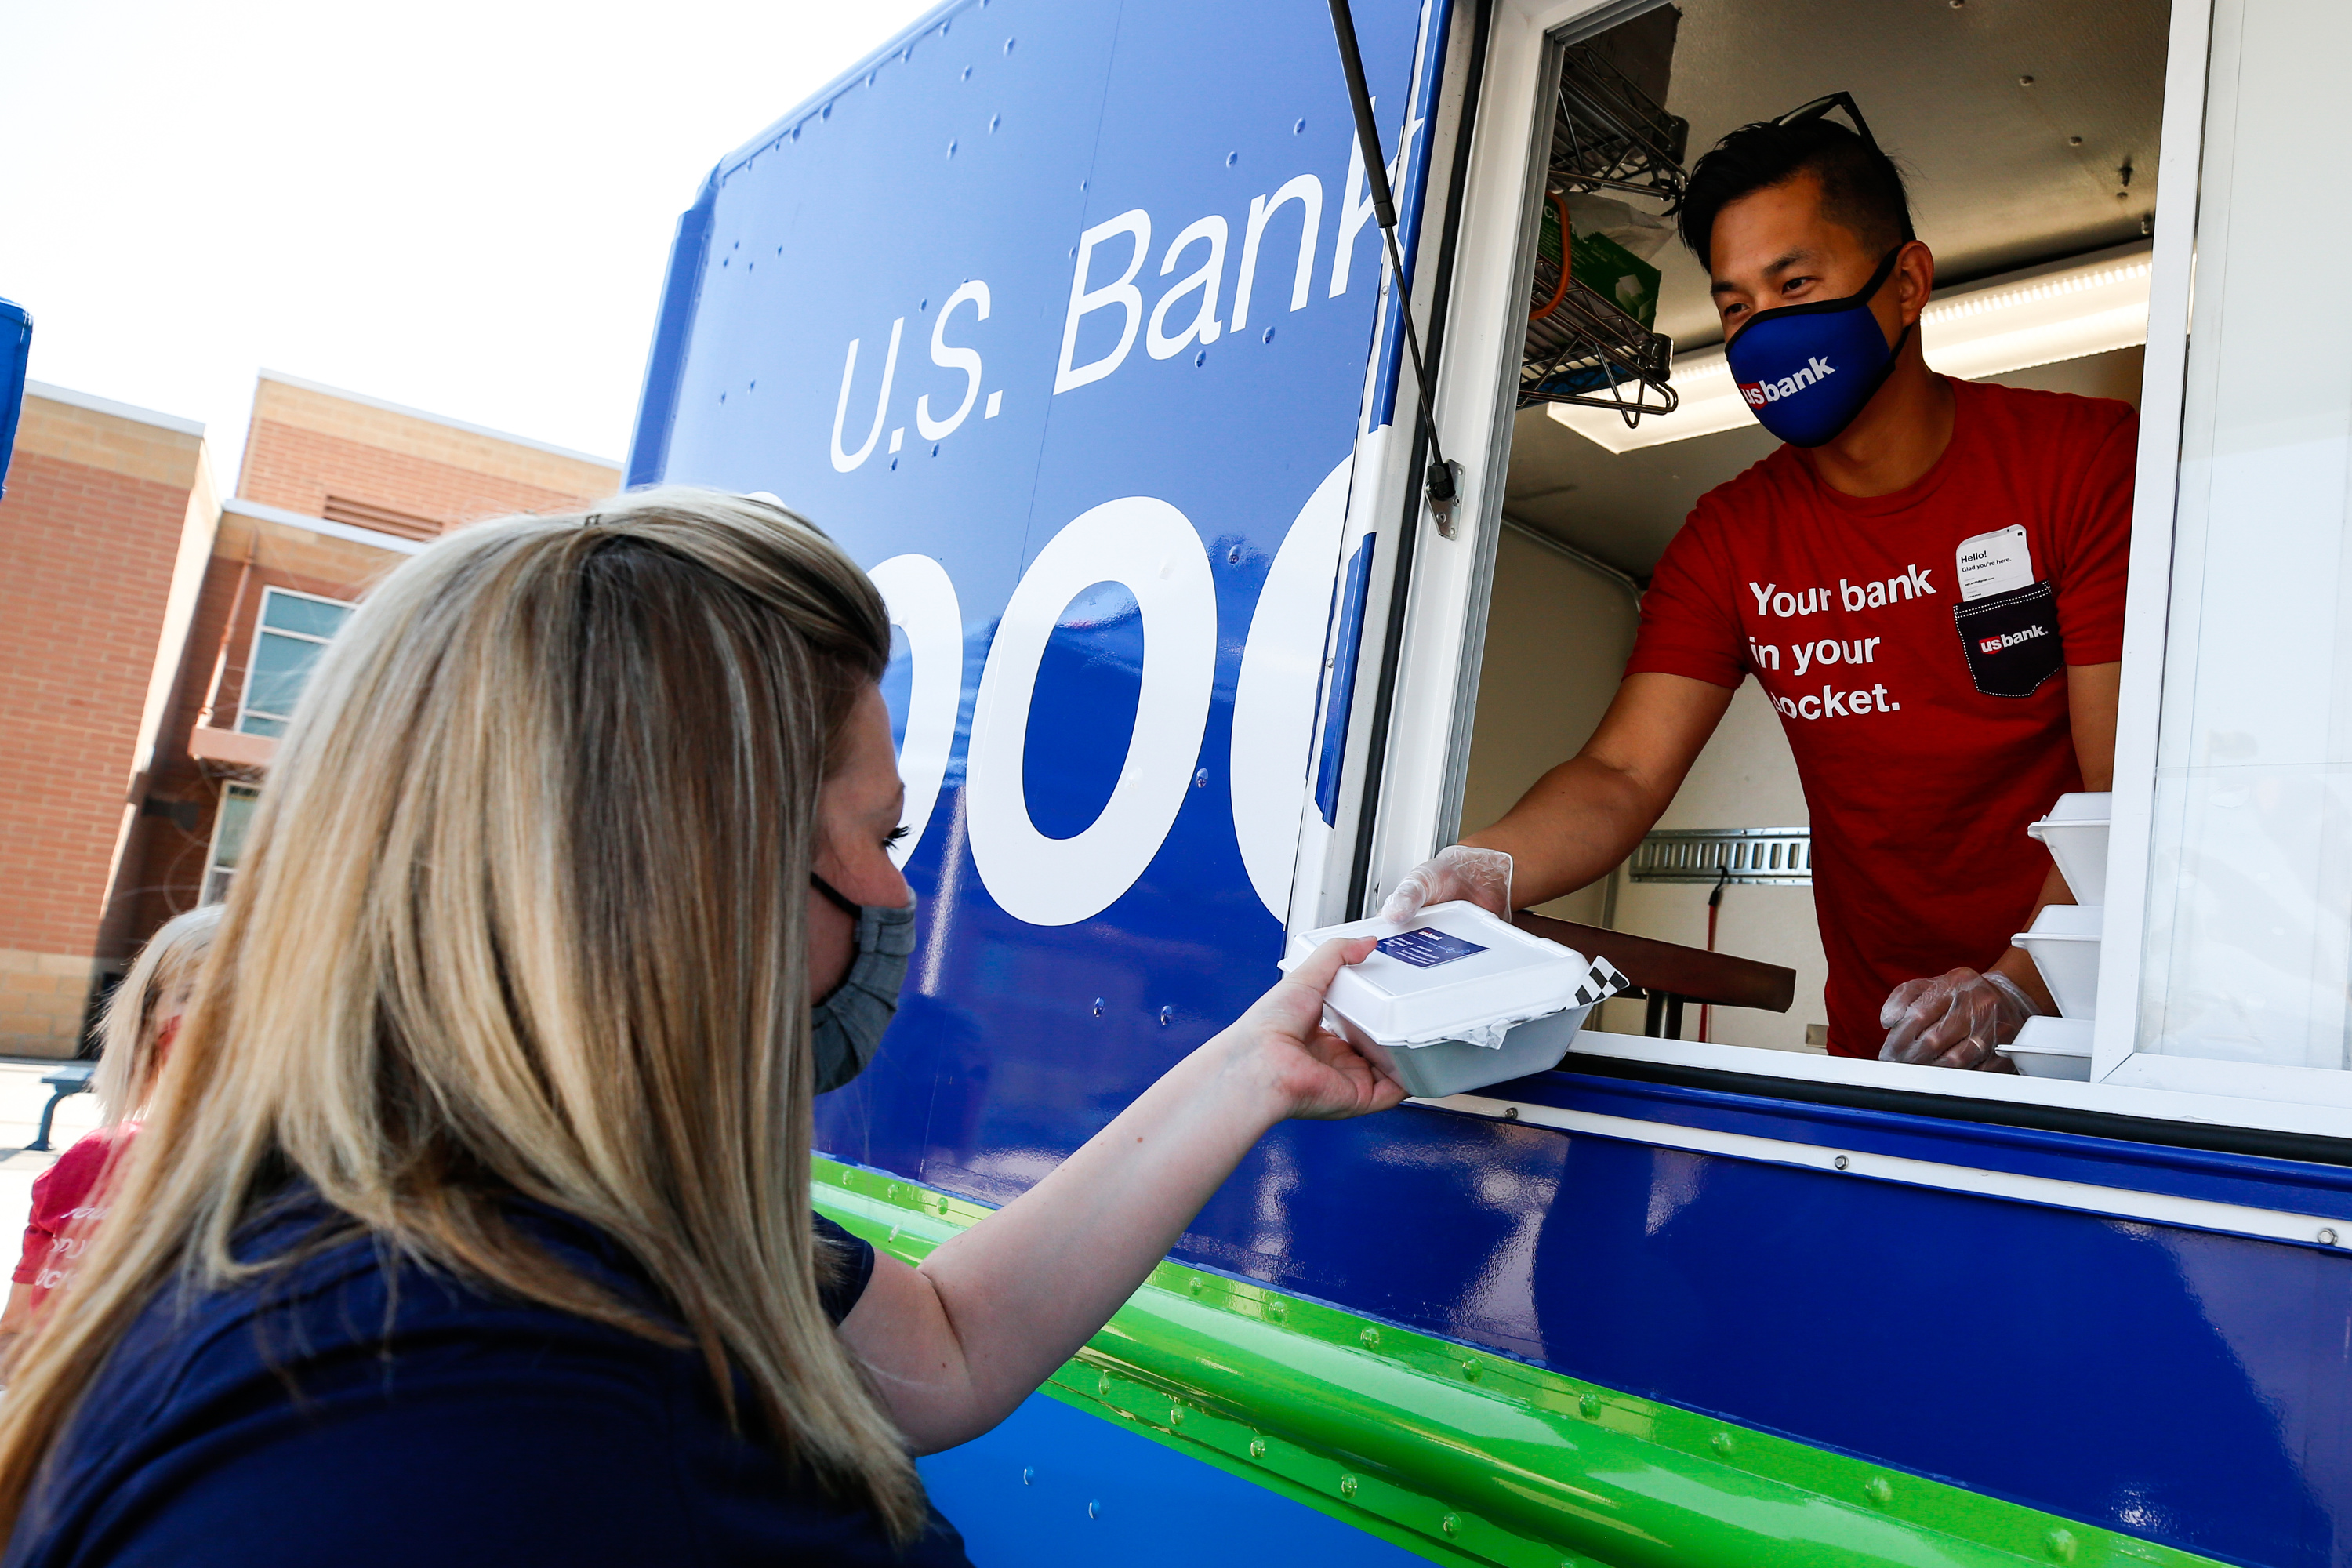 Jimmy Choi hands a boxed lunch to to Tara Spencer, a counselor at Westlake High School in Saratoga Springs, on Thursday, Sept. 24, 2020. U.S. Bank's Good Truck, which is traveling the country to support small businesses and honor frontline employees that are working to keep their communities going during the pandemic, made a stop at the school and treated educators to a free lunch from Kluck's Krispy Chicken.